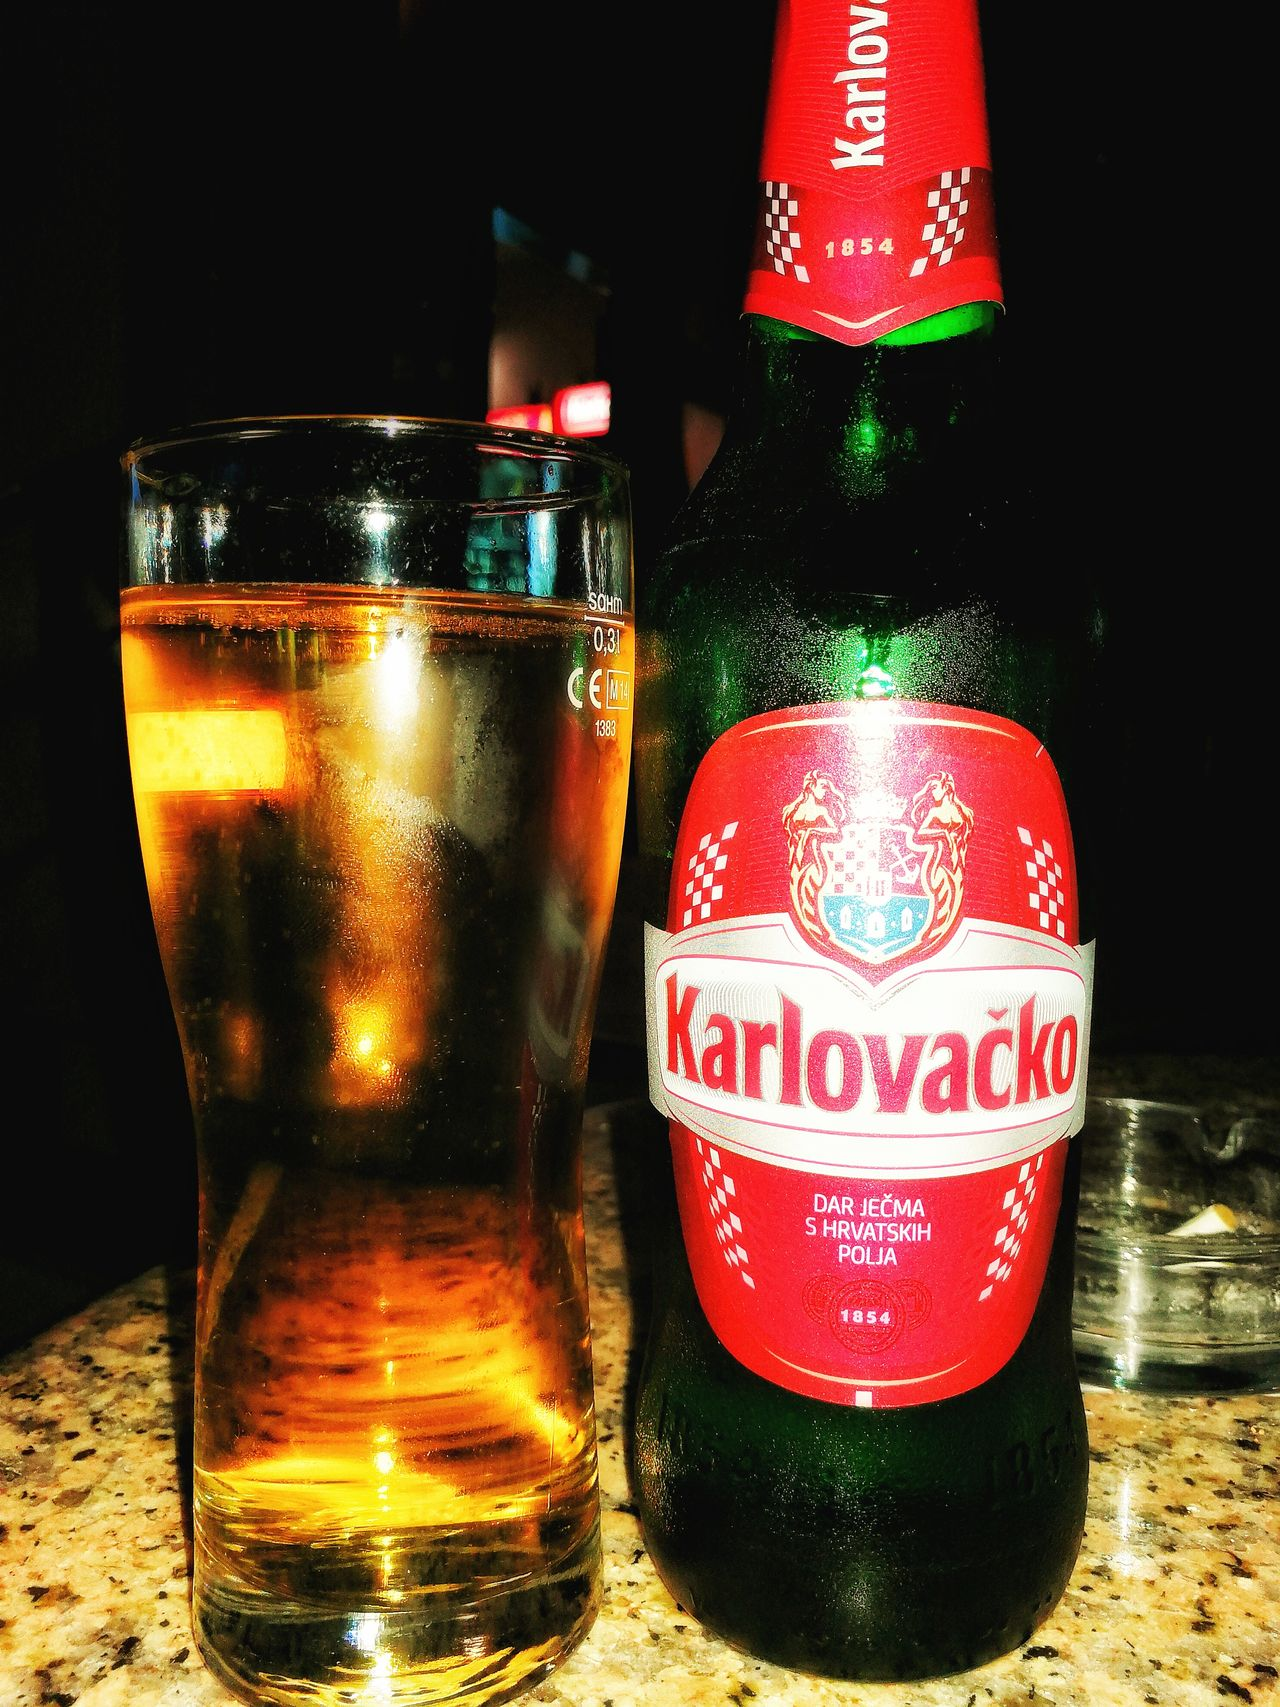 I'll have a cold one Drink Alcohol Drinking Glass Bottle Freshness Beer Karlovacko